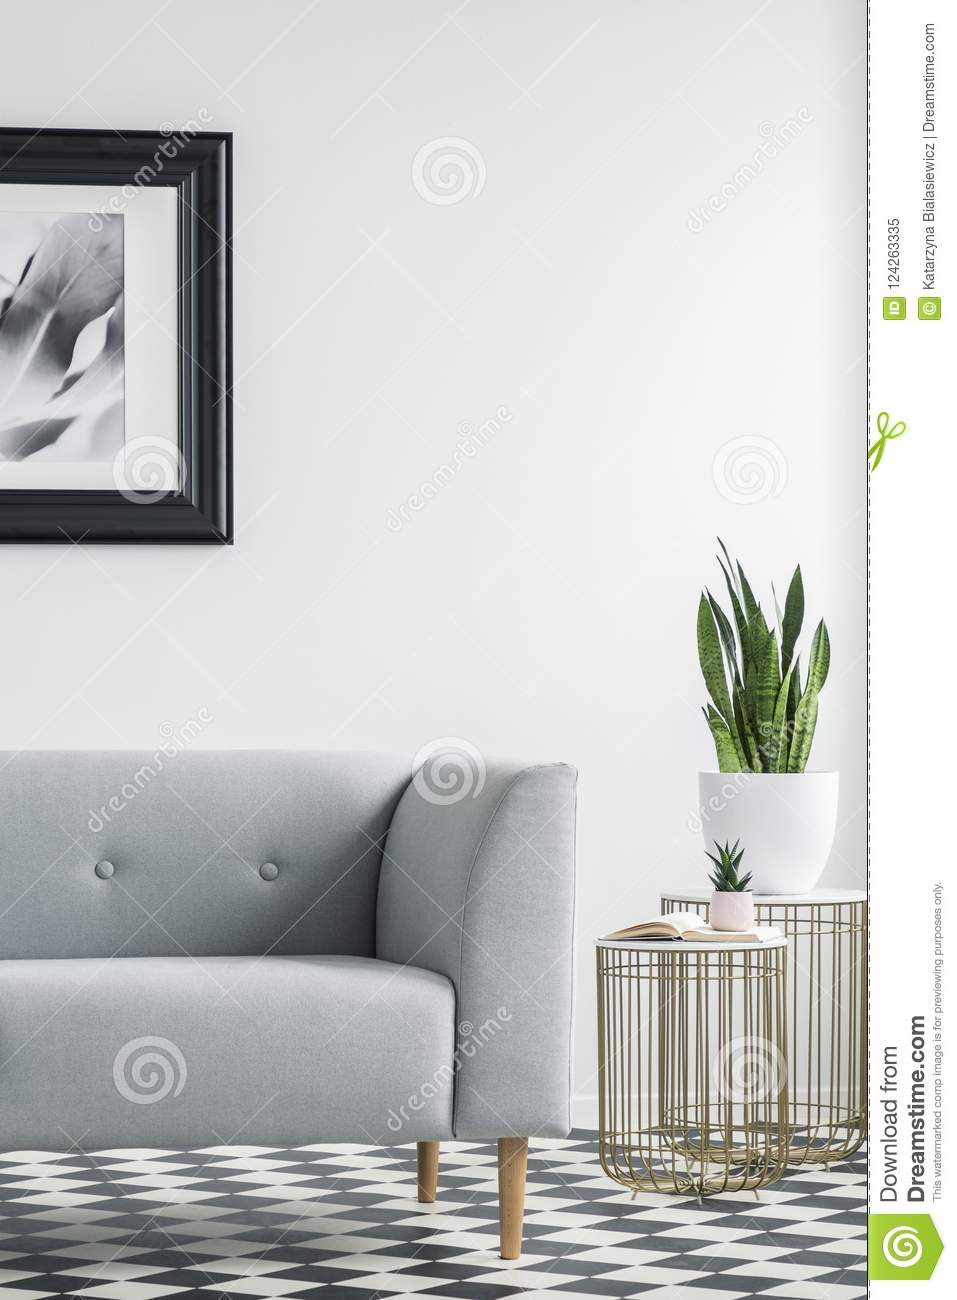 Download Cropped Photo Of A Grey Sofa Next To Golden Tables With Plants I  Stock Image